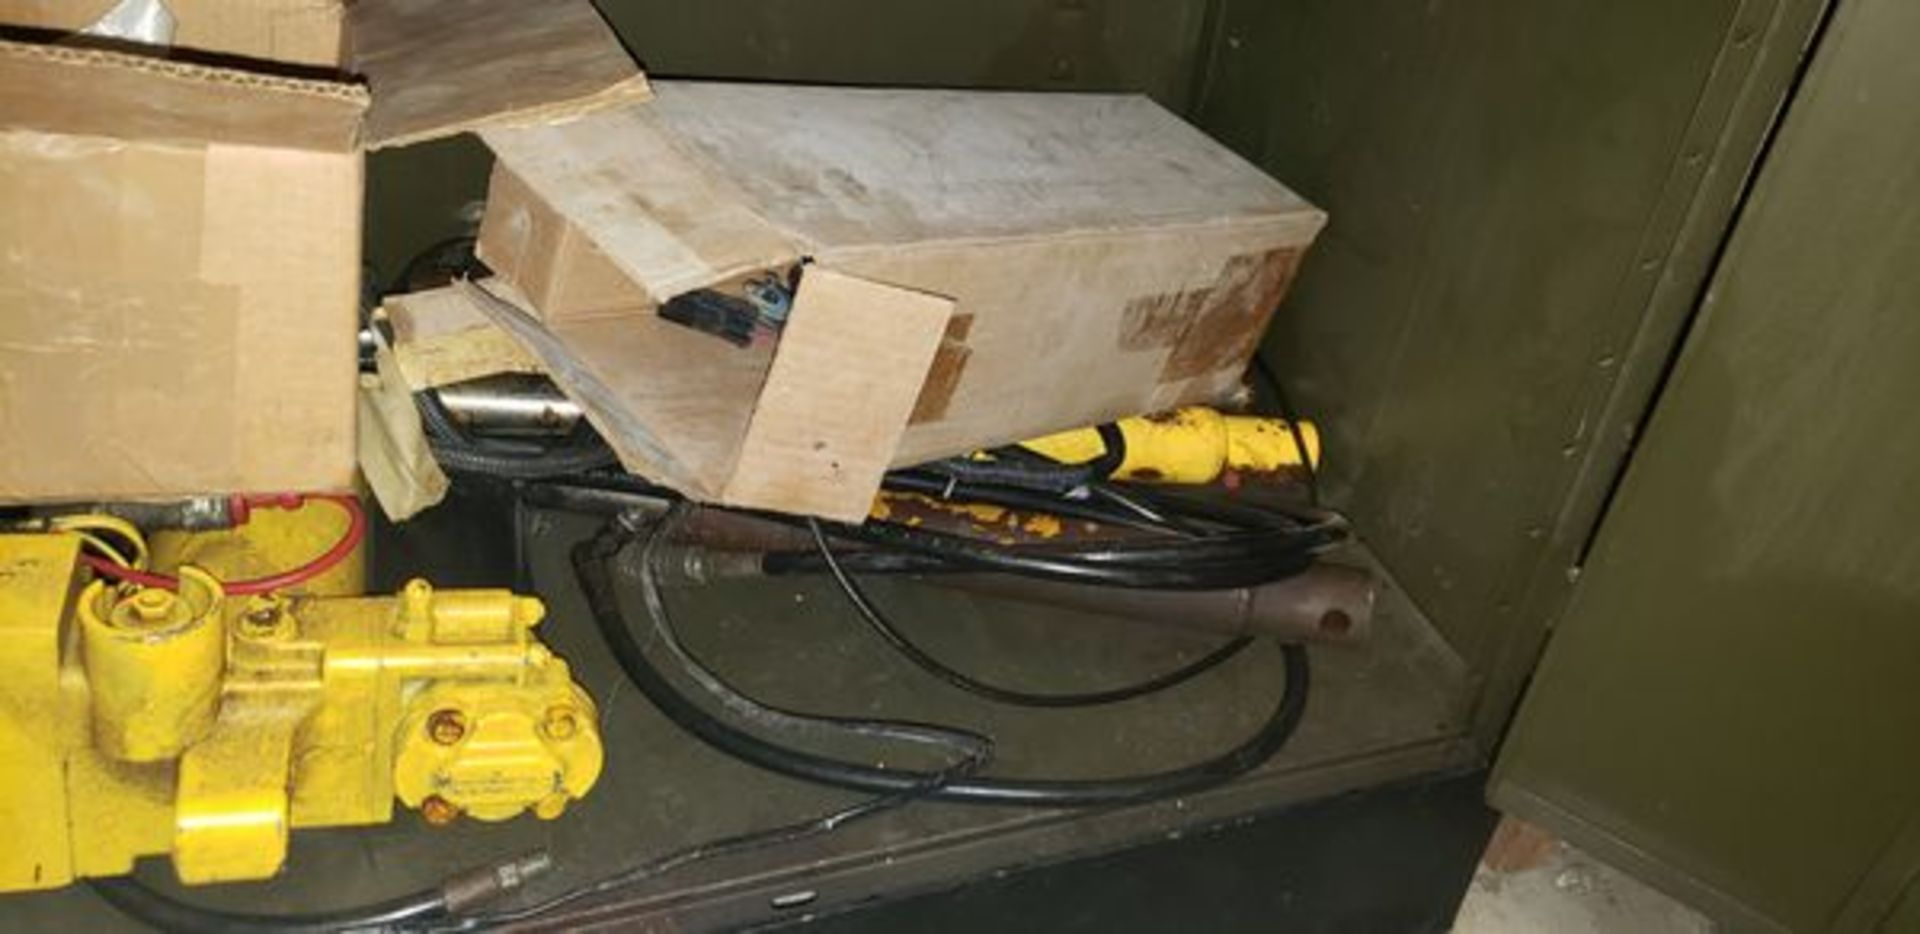 LOT OF S-10 AND PLOW PARTS WITH 2 DOOR METAL STORAGE CABINENT - Image 16 of 16